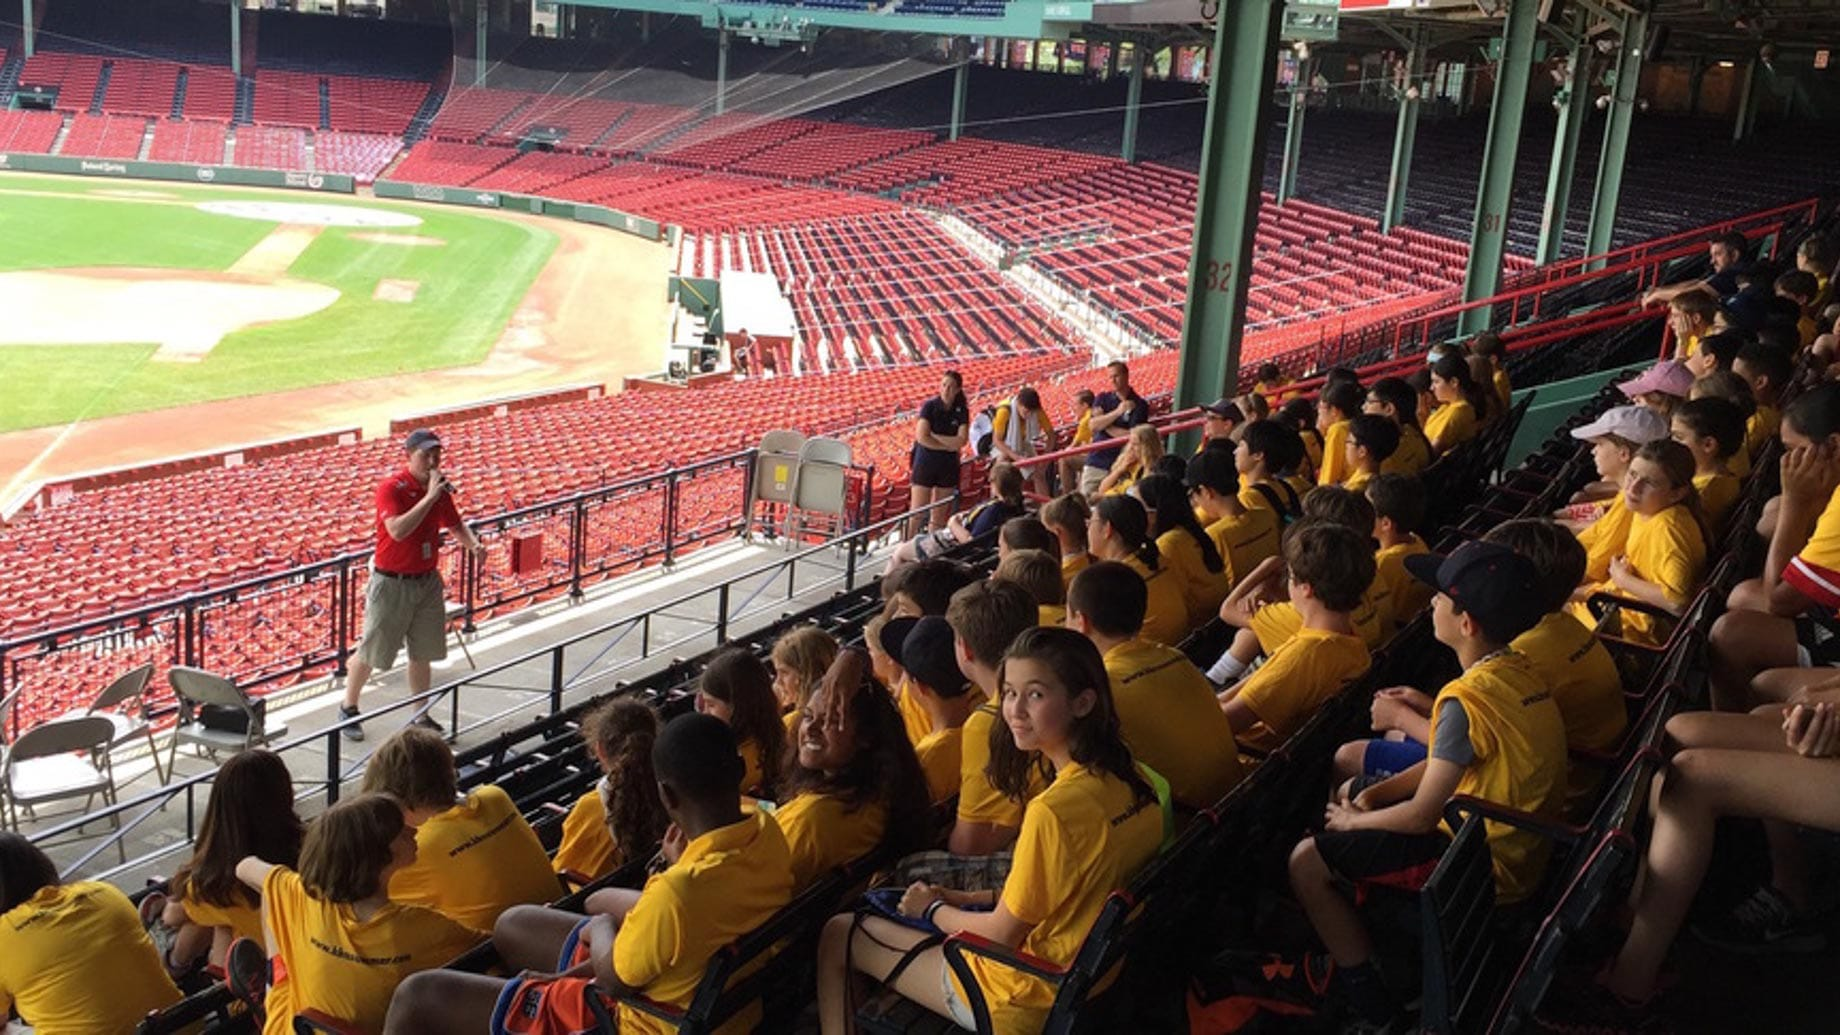 summer campers at red sox stadium